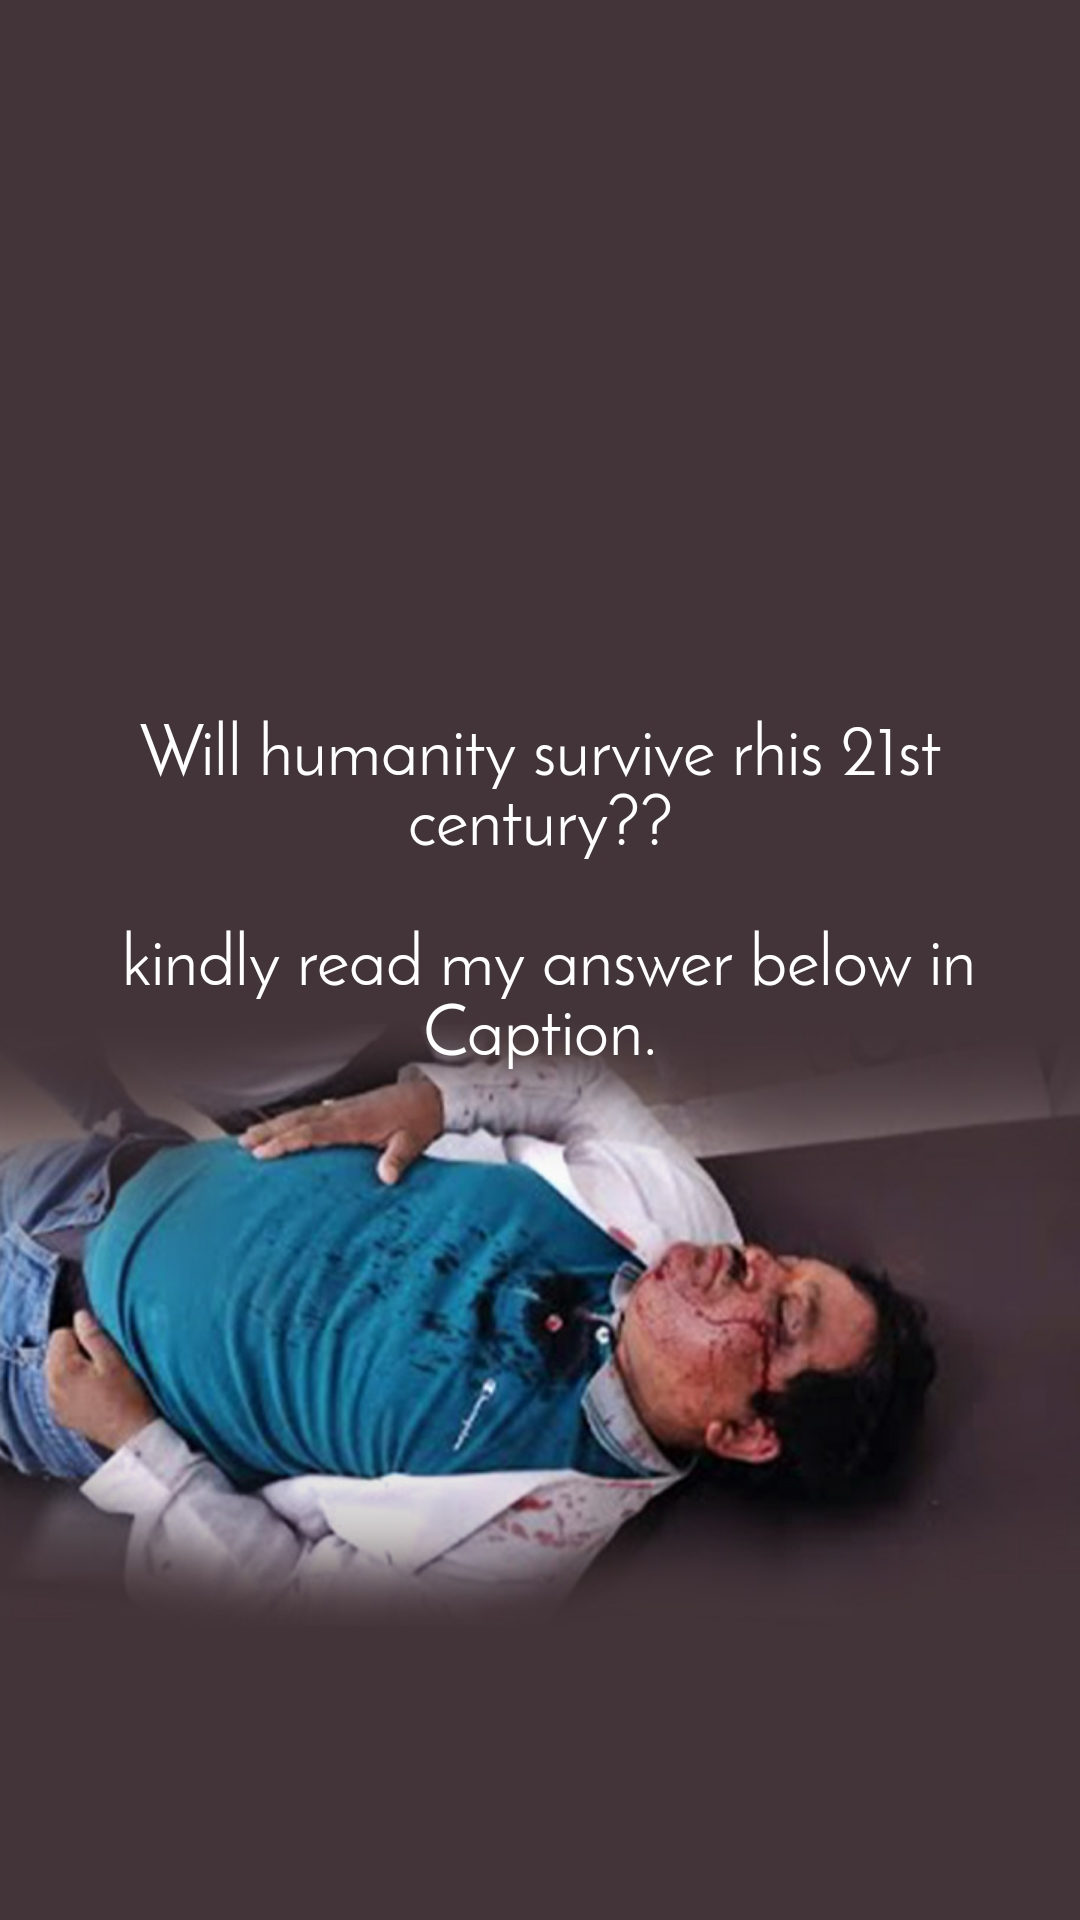 Will humanity survive rhis 21st century??   kindly read my answer below in Caption.